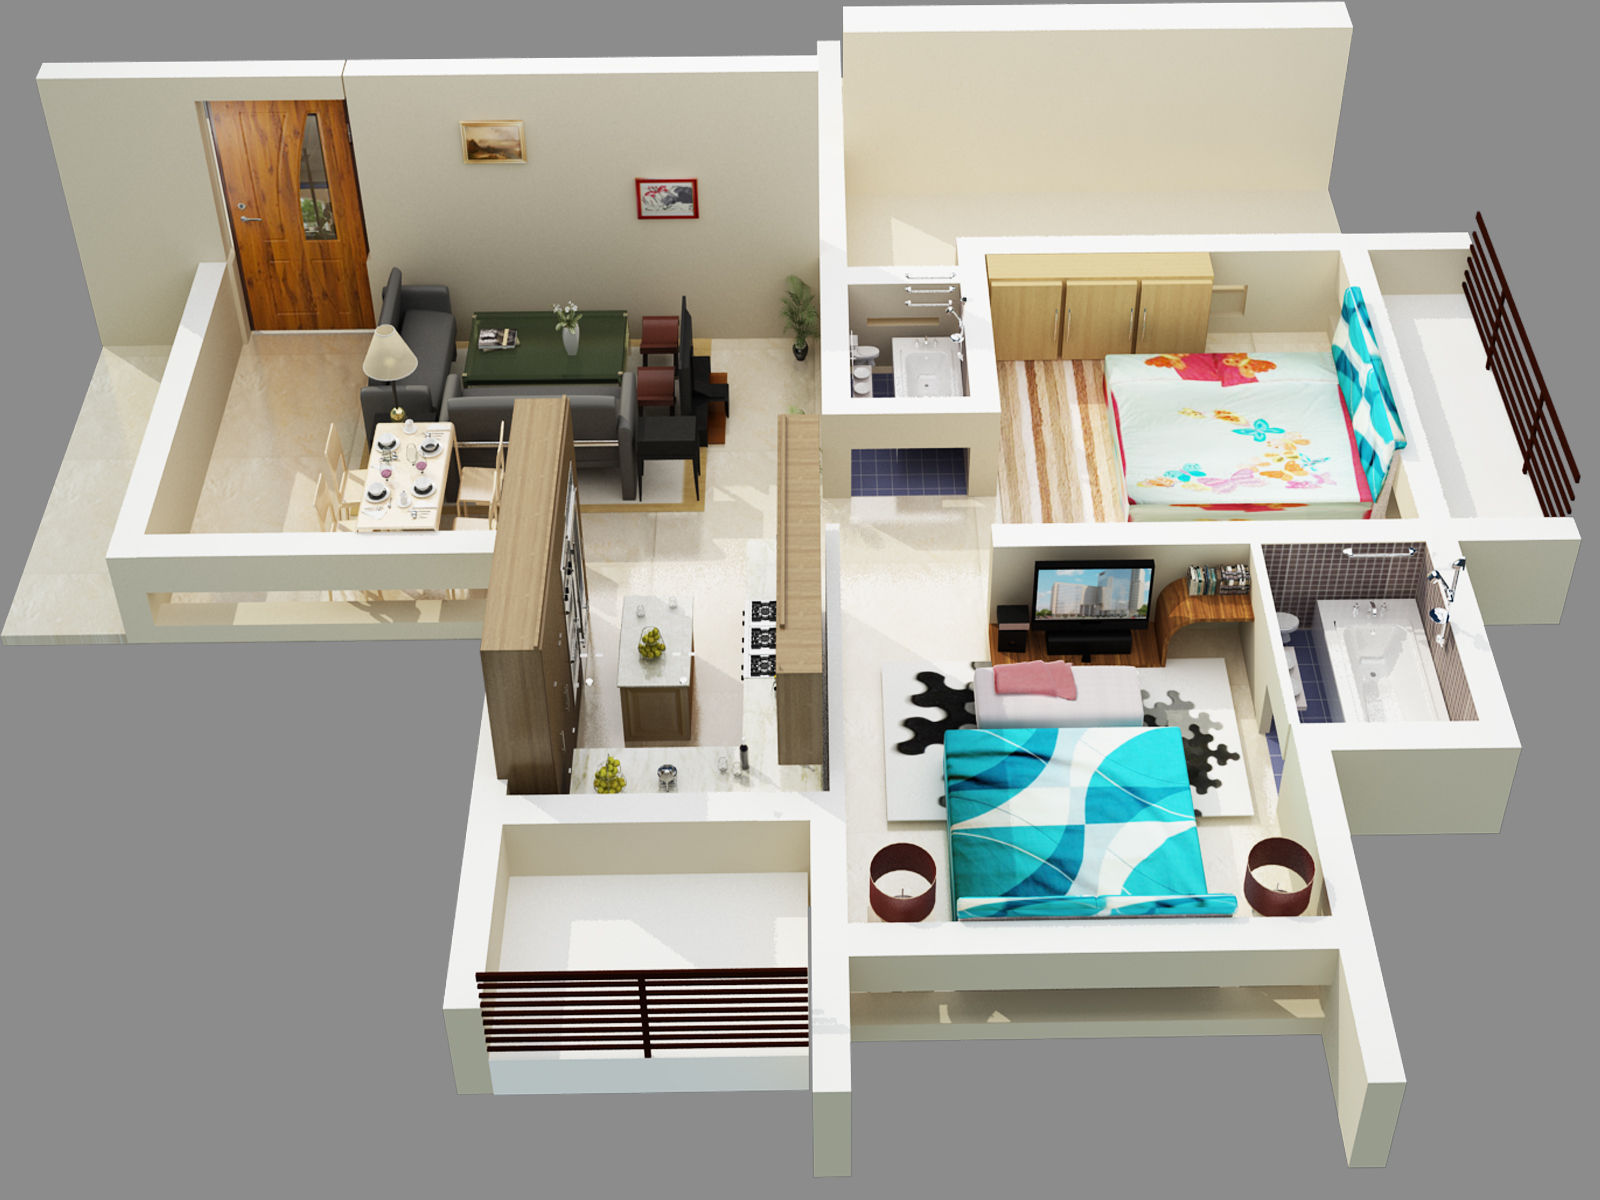 Floor Plan Drawing Software: Create Your Own Home Design Easily ...